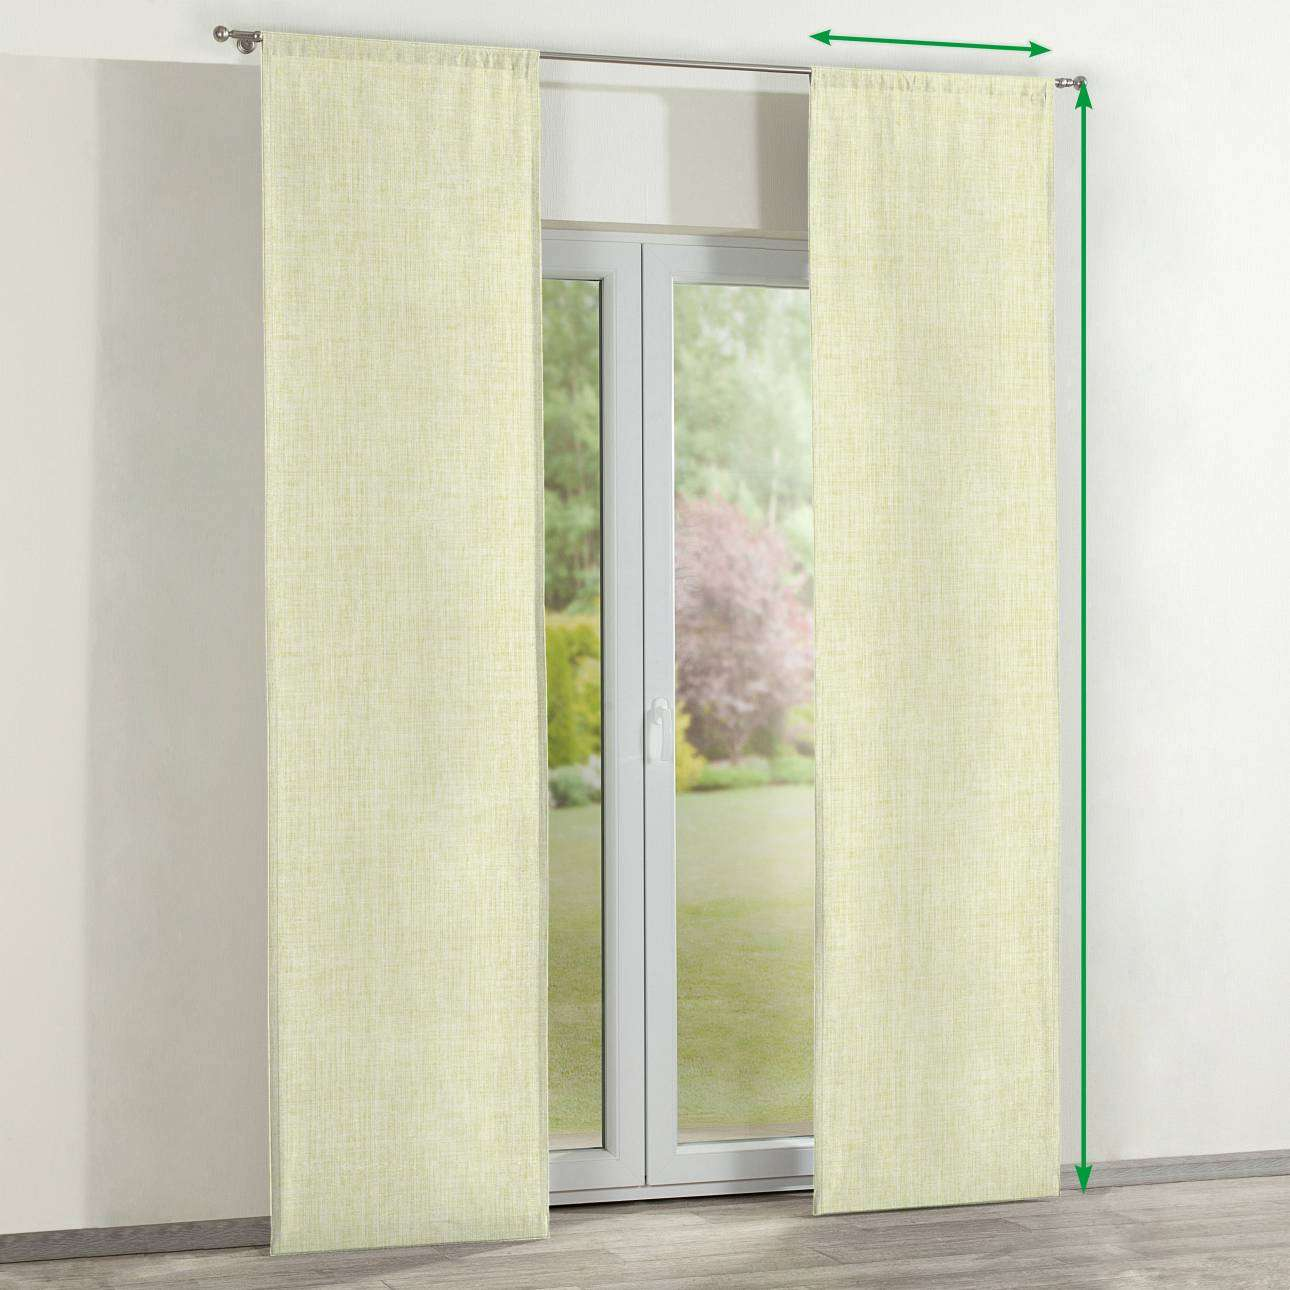 Slot panel curtains – Set of 2 in collection Aquarelle, fabric: 140-73